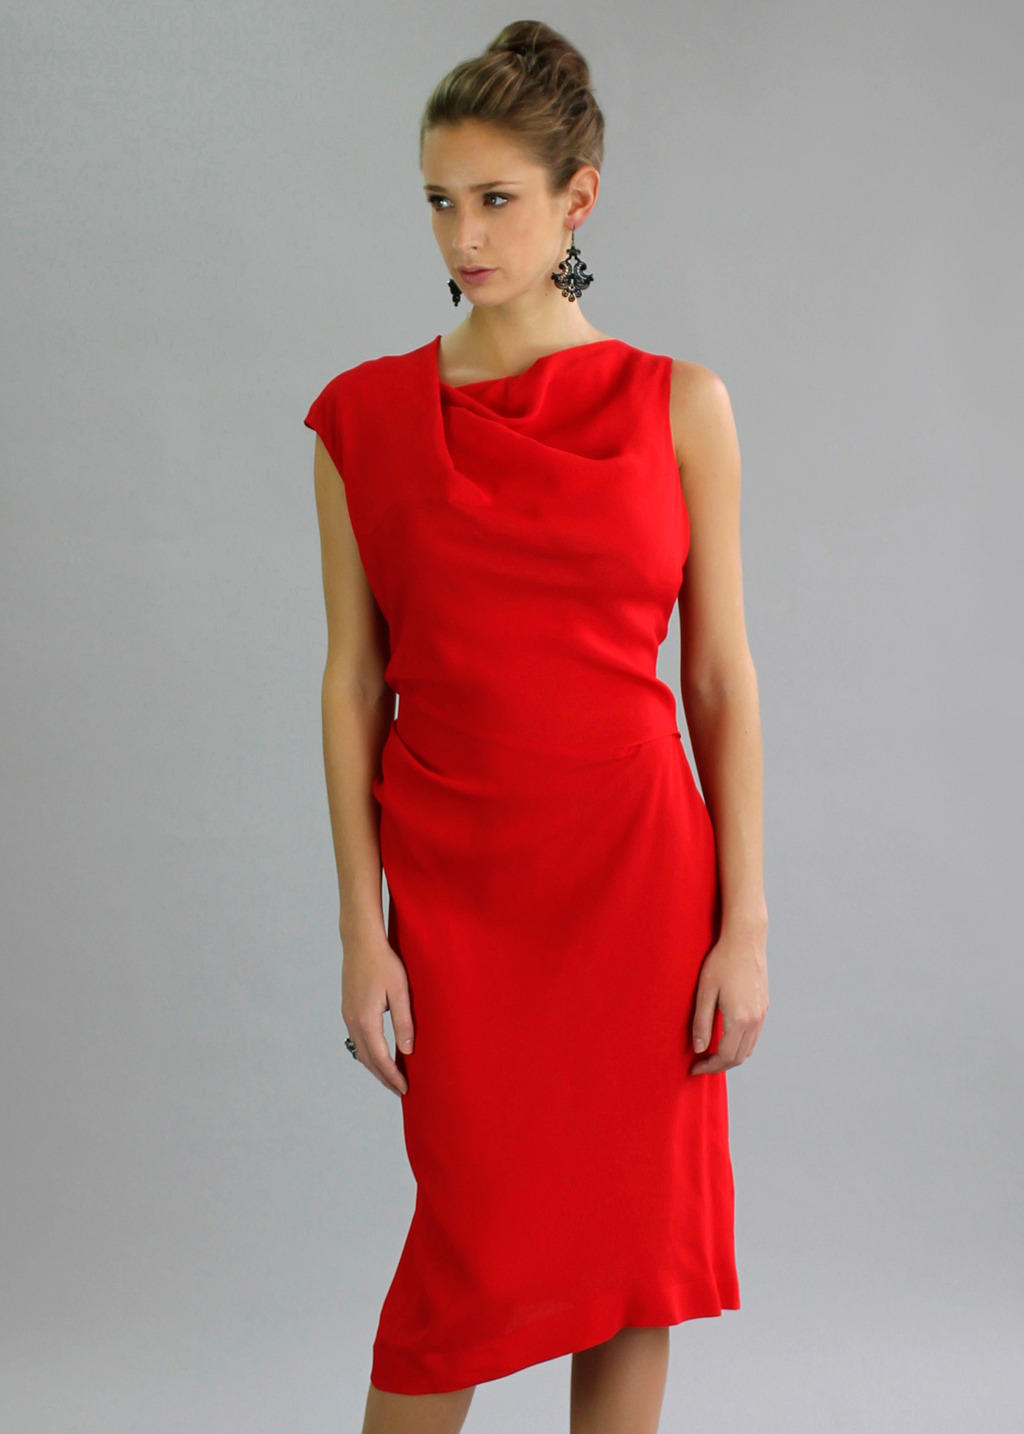 Alto Dress In Pomegranate - style: shift; length: below the knee; neckline: cowl/draped neck; pattern: plain; sleeve style: sleeveless; bust detail: subtle bust detail; predominant colour: true red; occasions: evening, occasion; fit: body skimming; fibres: viscose/rayon - 100%; sleeve length: sleeveless; texture group: silky - light; pattern type: fabric; season: a/w 2013